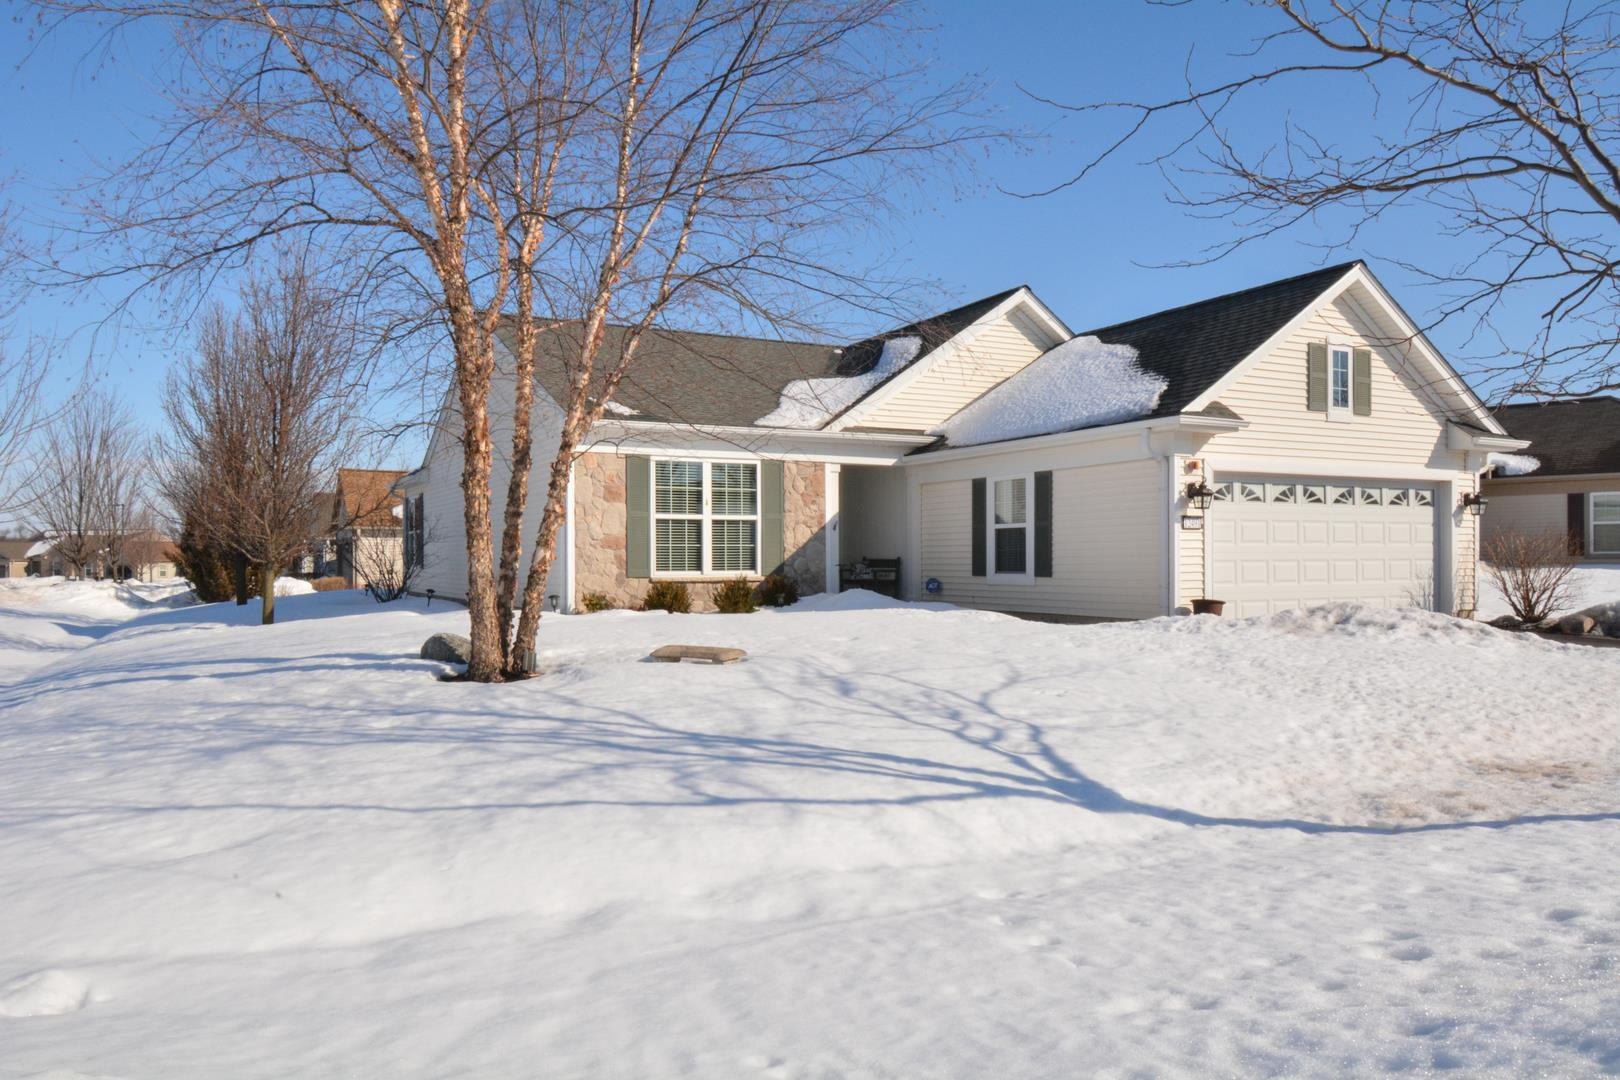 12491 Russet Lane, Huntley, IL 60142 - #: 11002874